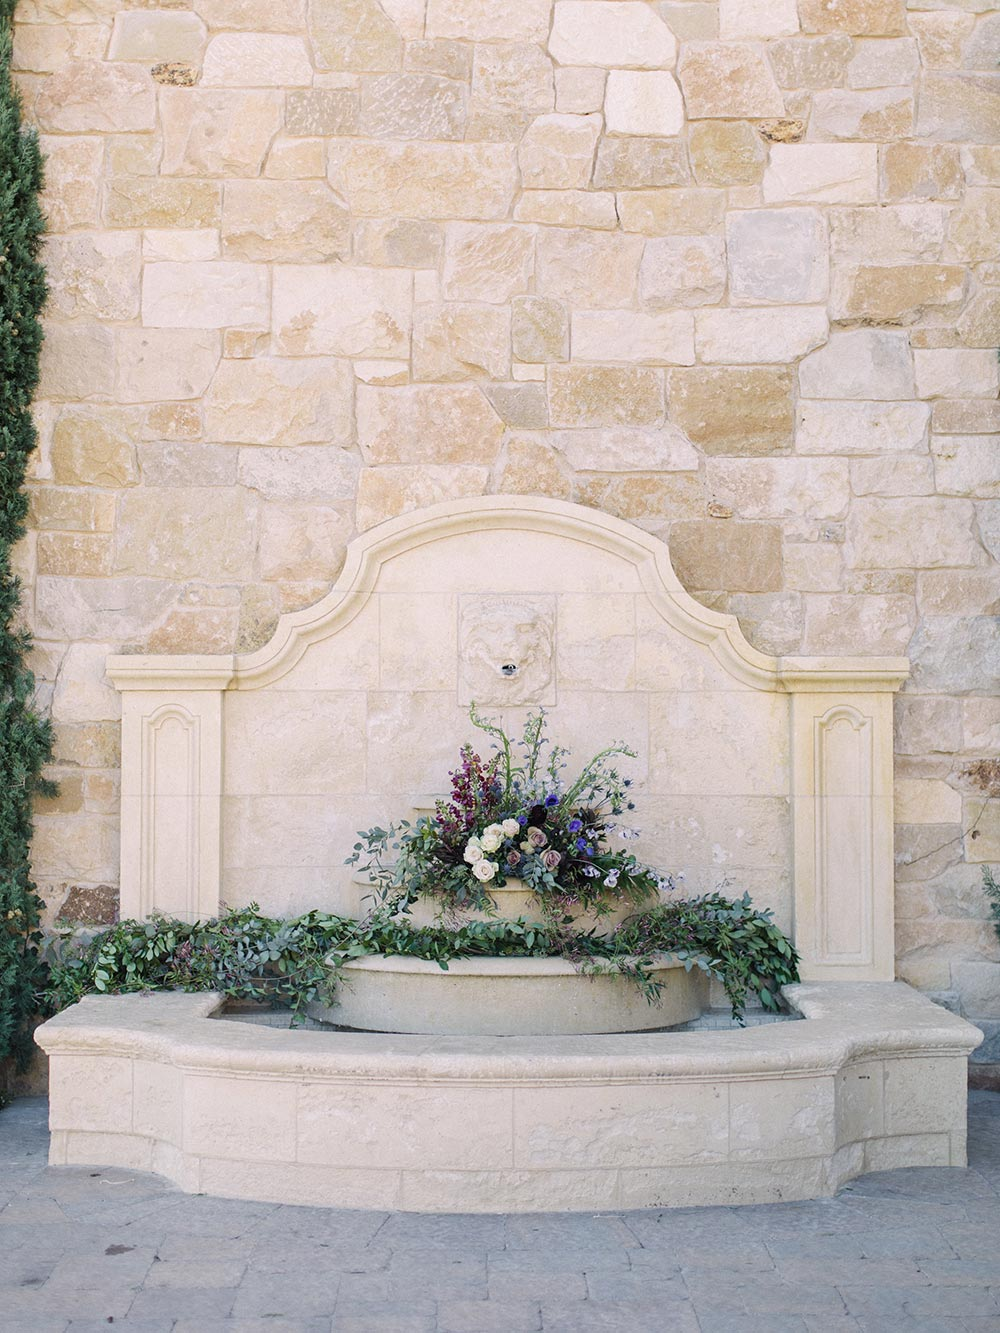 fountain filled with wedding flowers